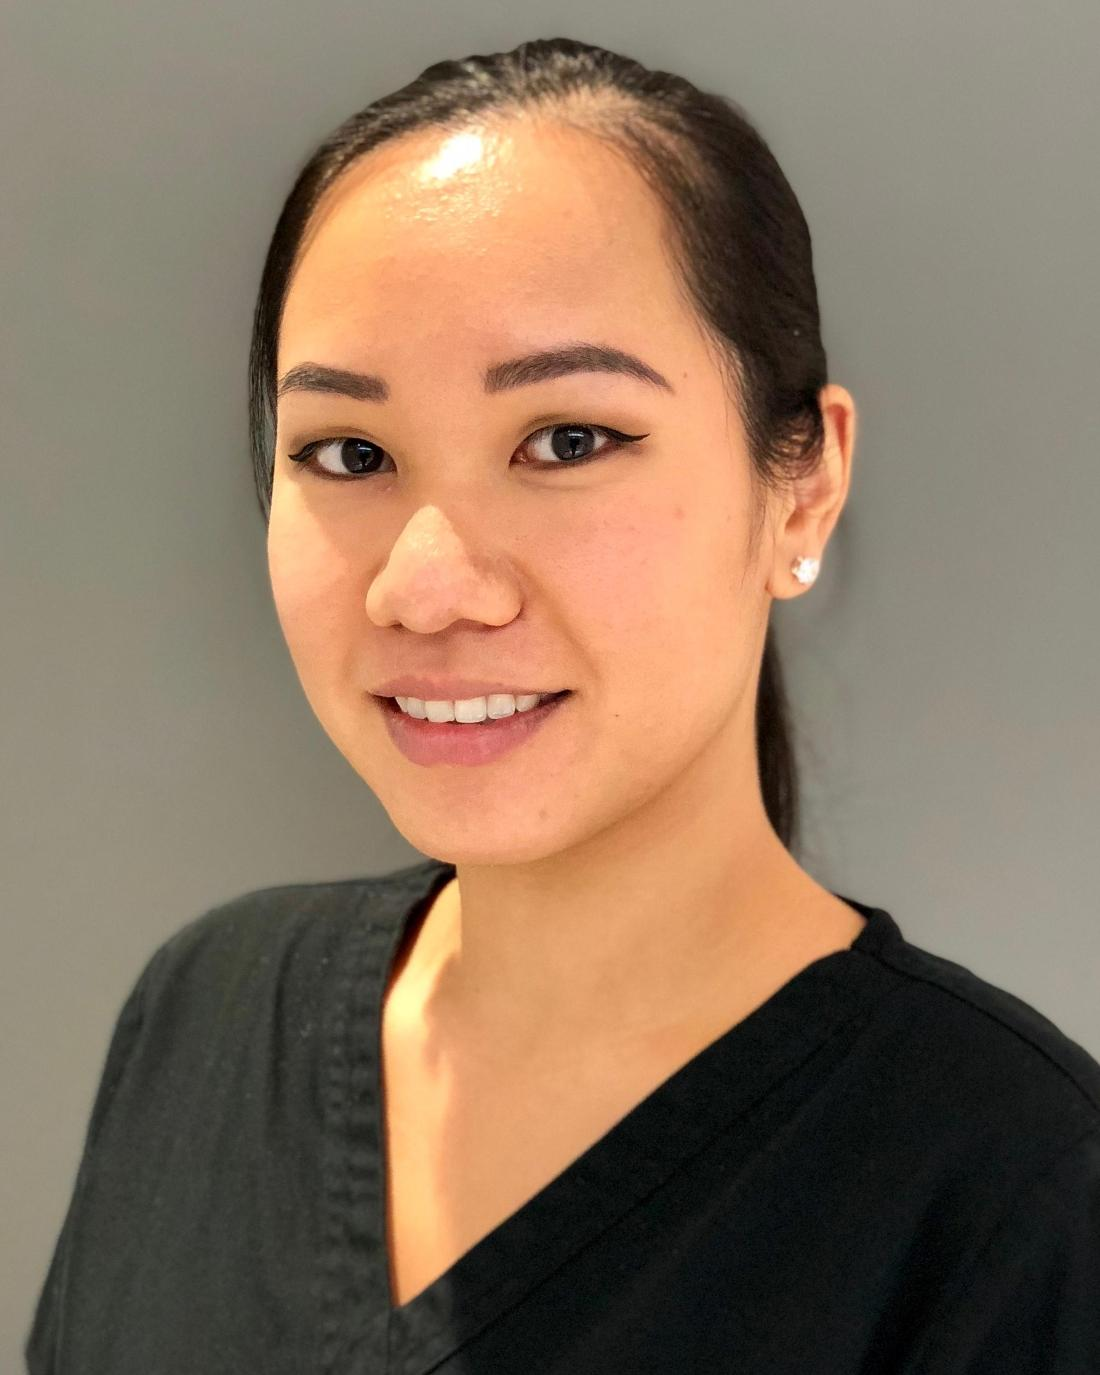 Dr. Bracy's dental office hygienist in the West Village. Shirley does dental cleanings!